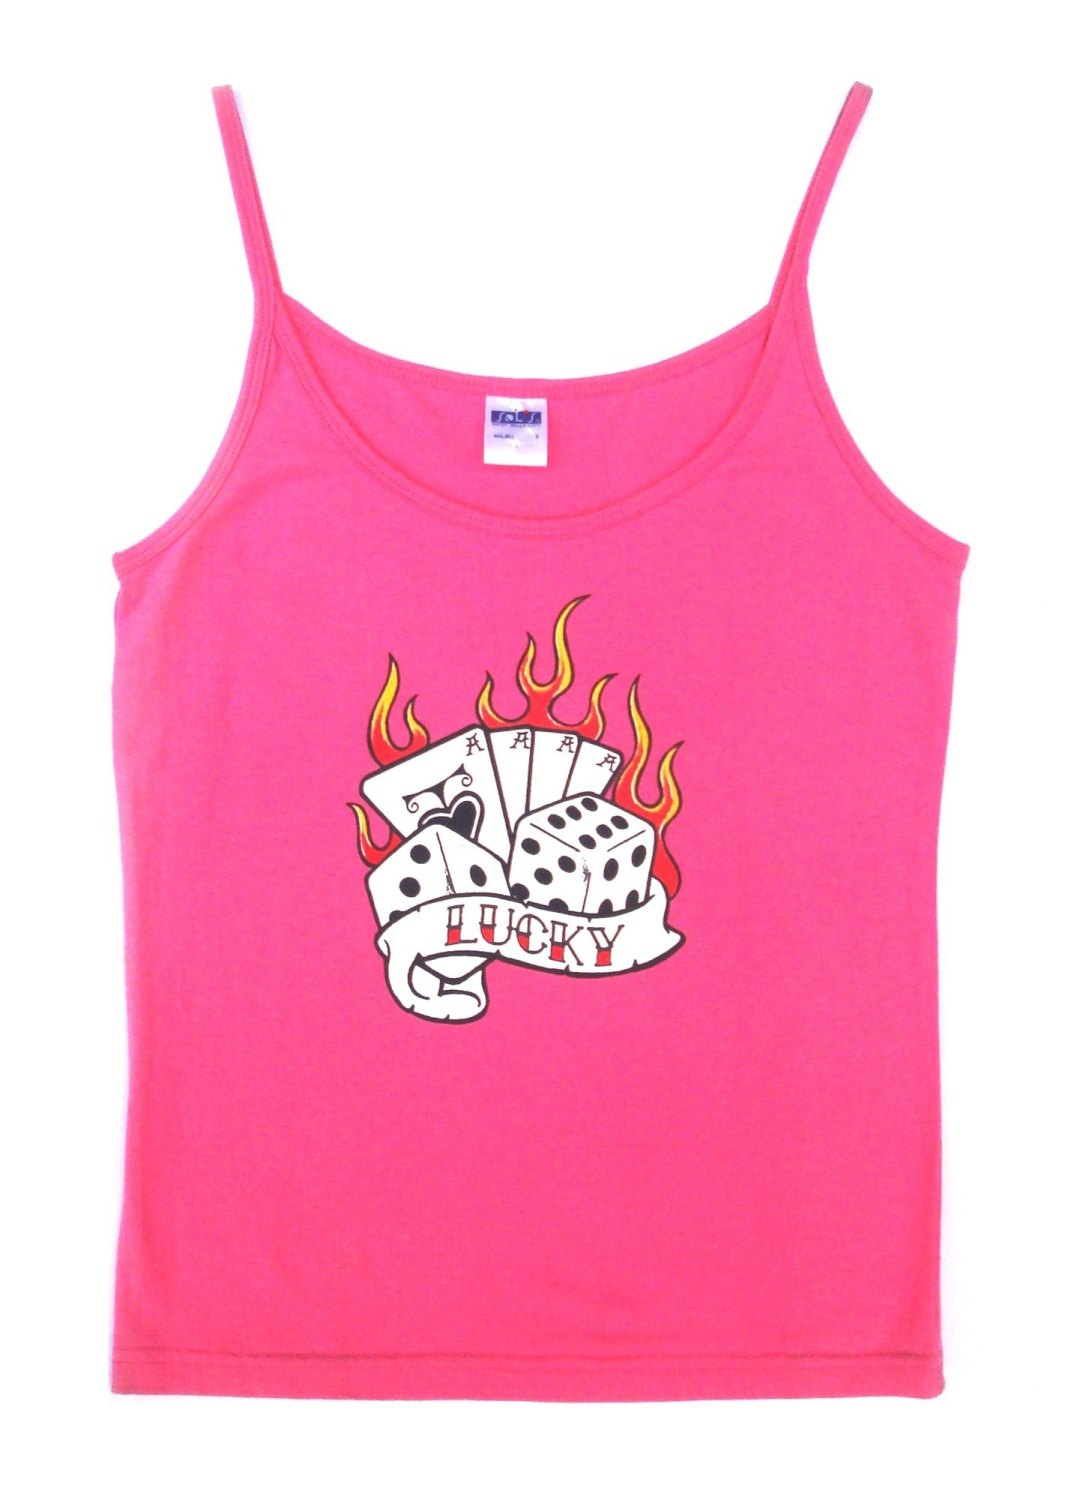 Rock N Roll Suicide Lucky Dice Pink Strappy Top Small